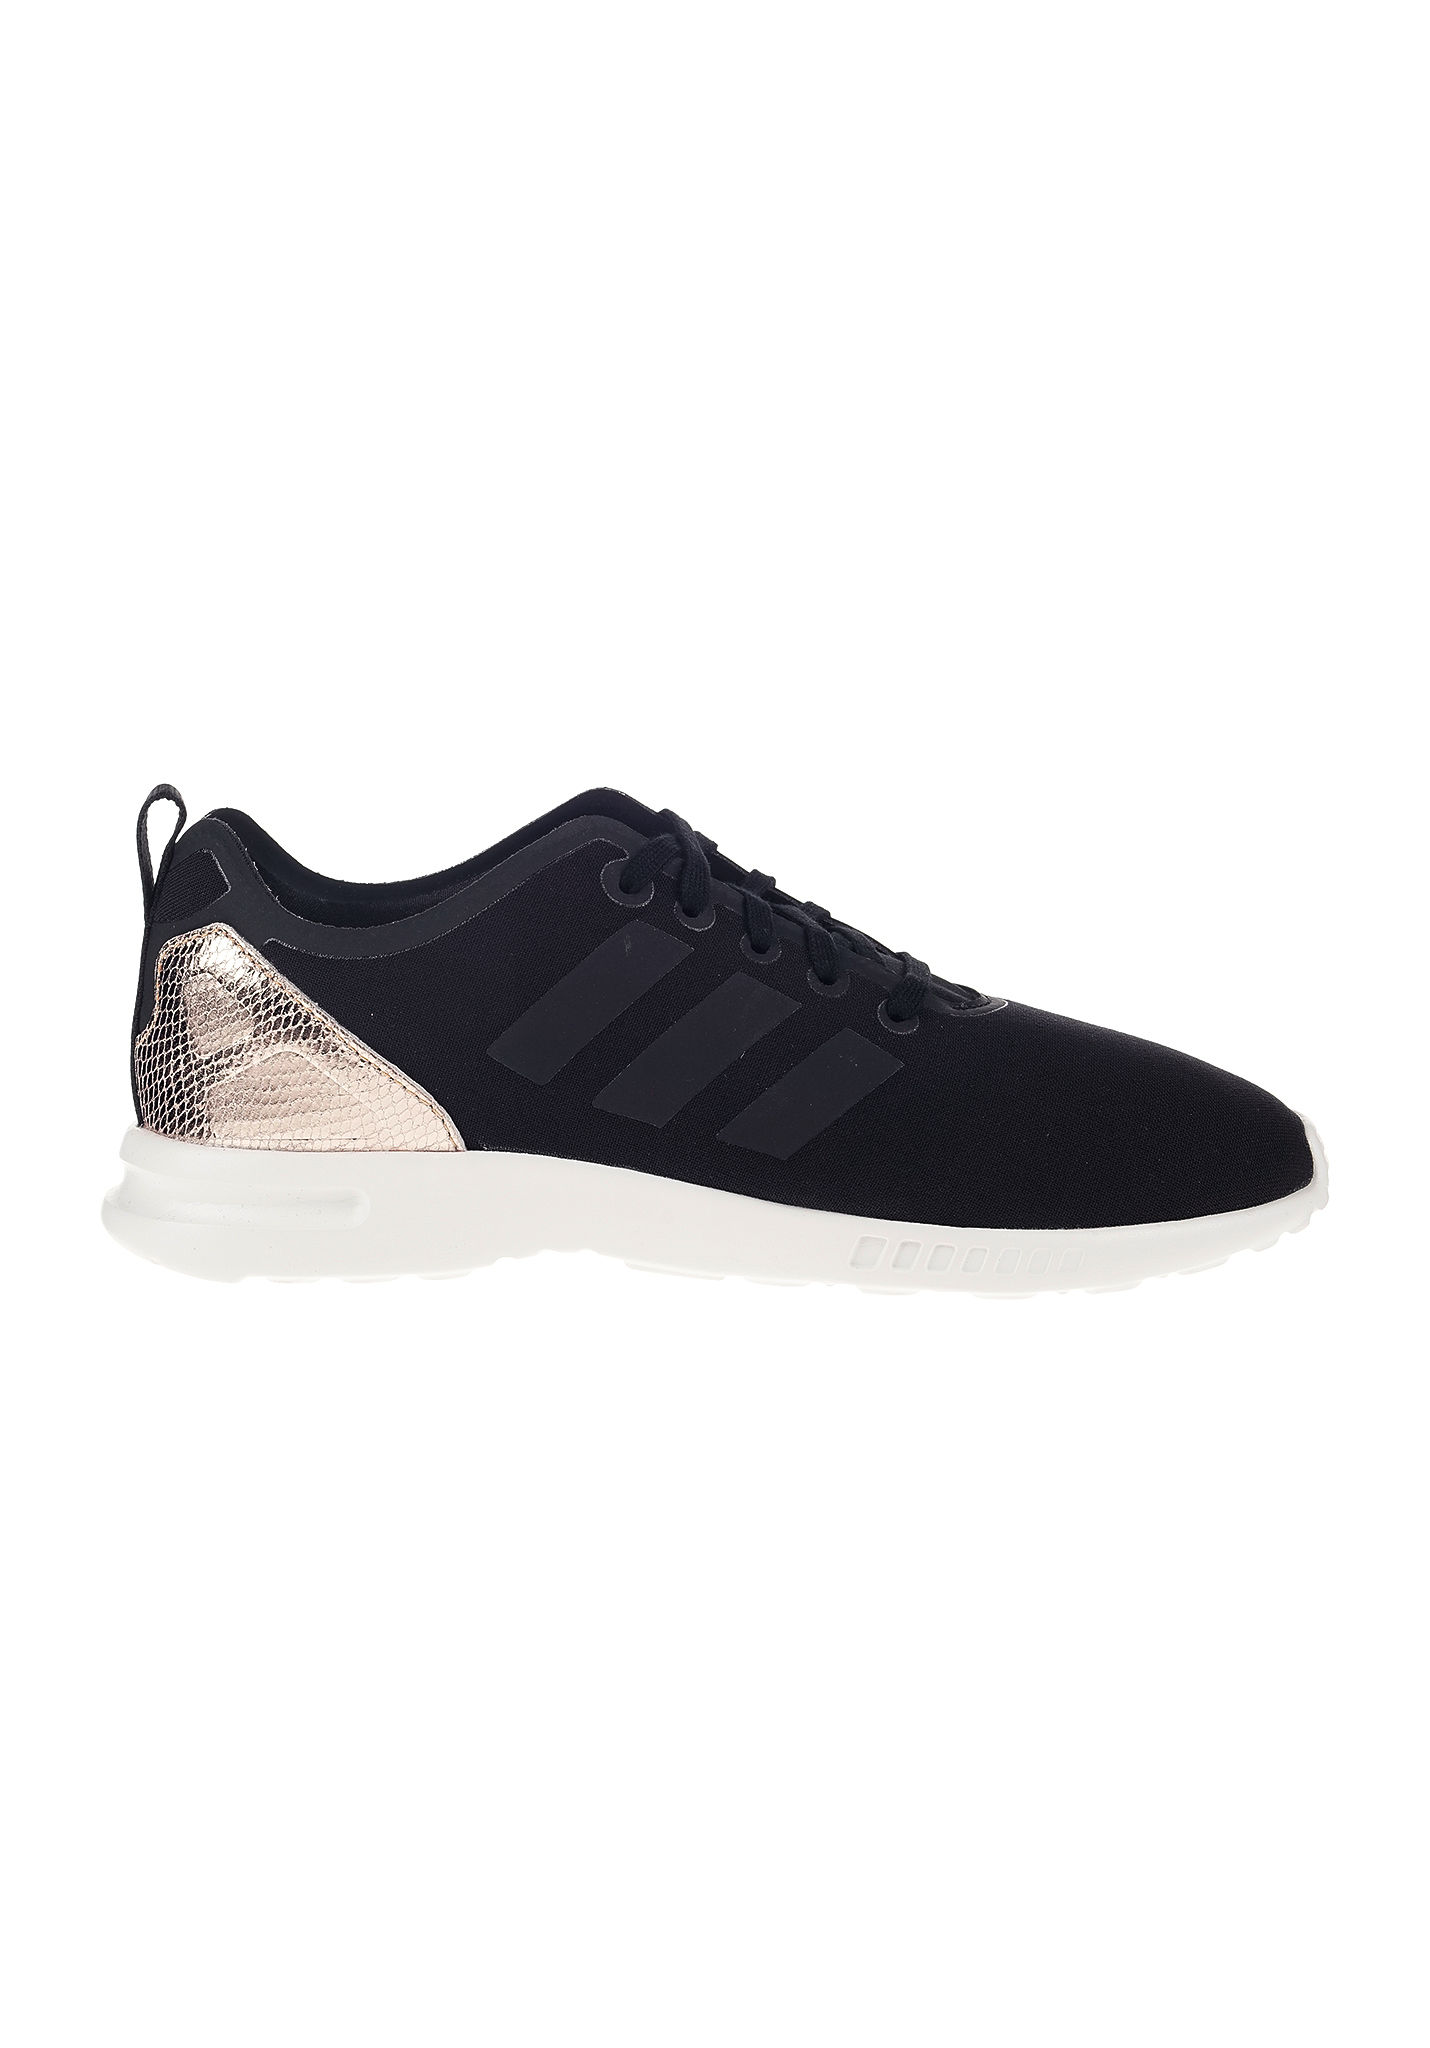 739bc1ad8630 ADIDAS ZX Flux ADV Smooth - Sneakers for Women - Black - Planet Sports